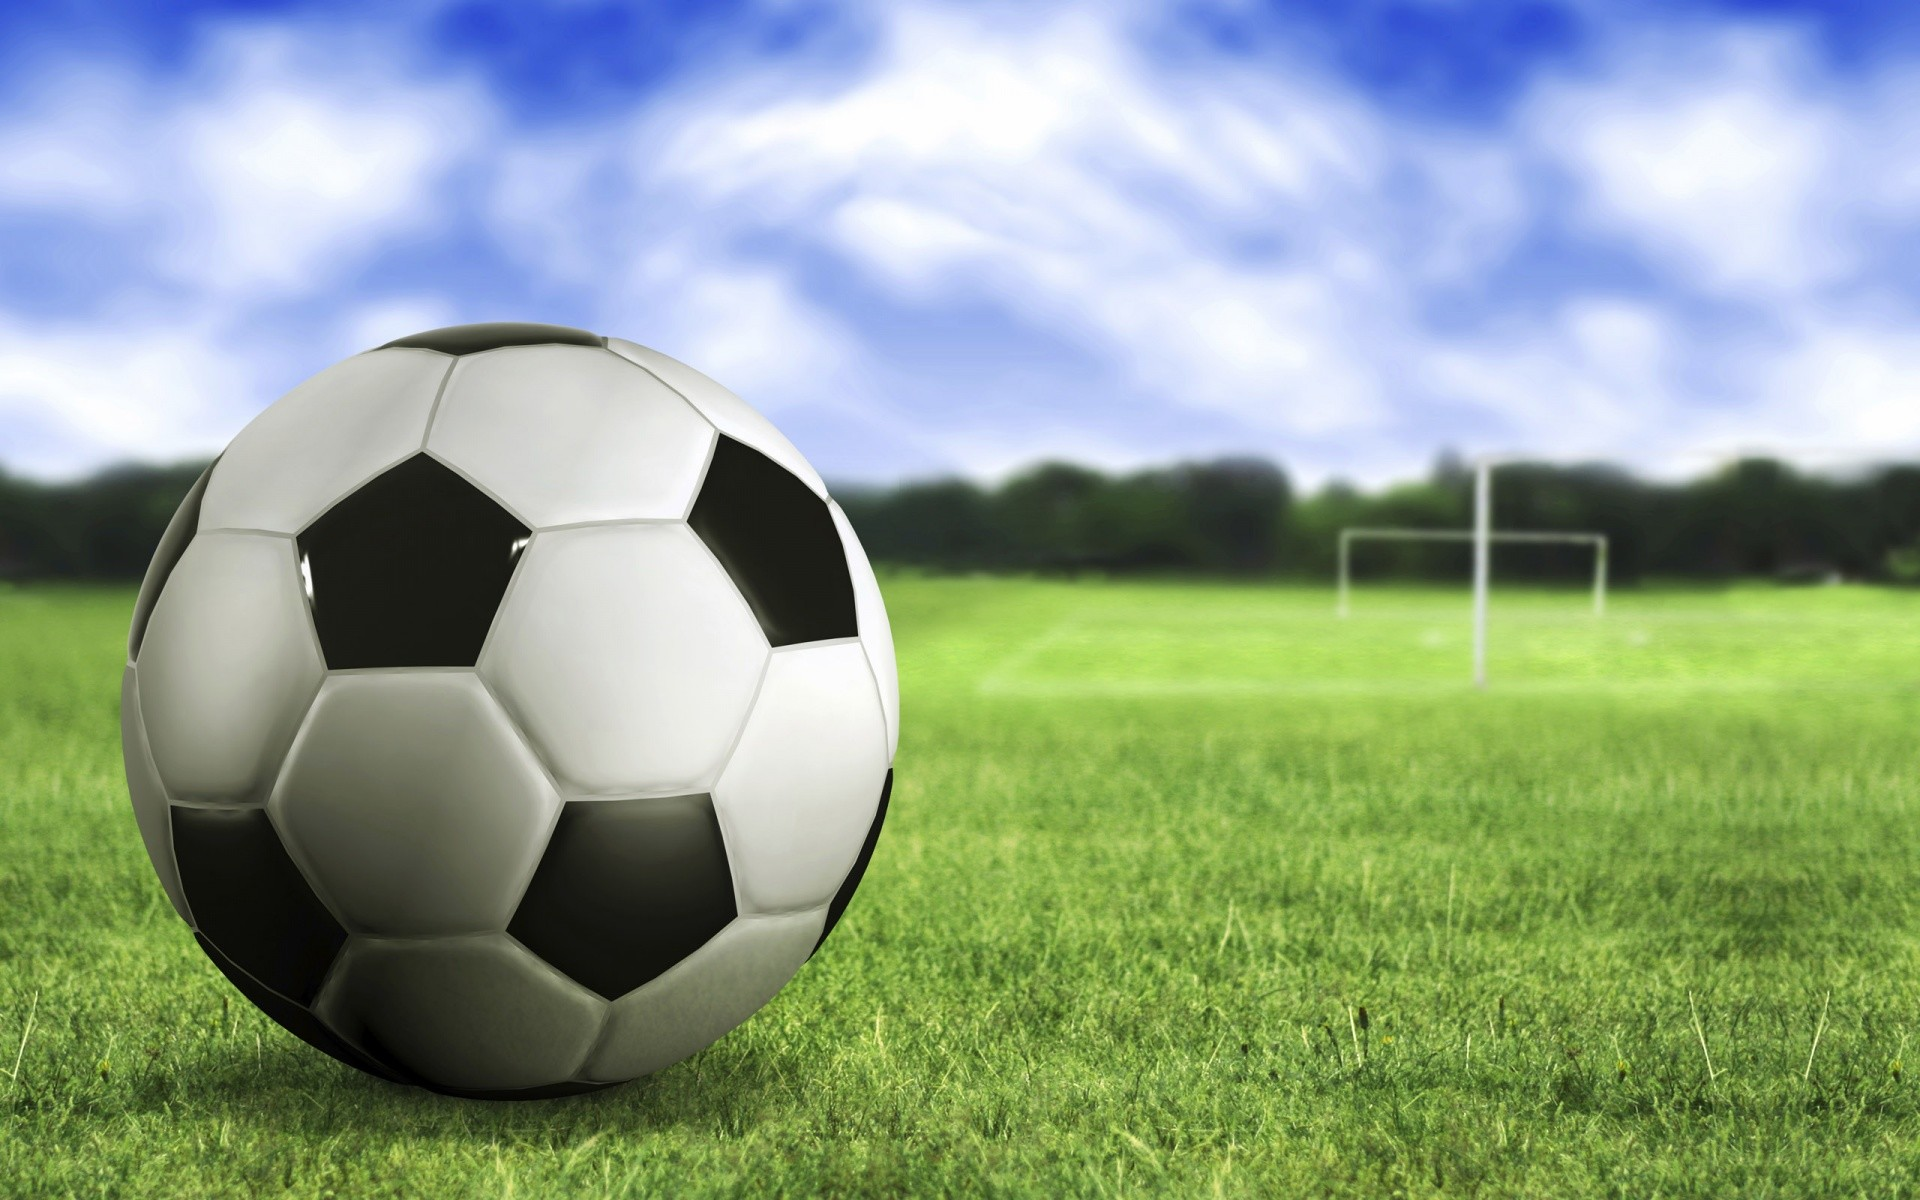 1920x1200 Soccer ball on the grass wallpapers and stock photos